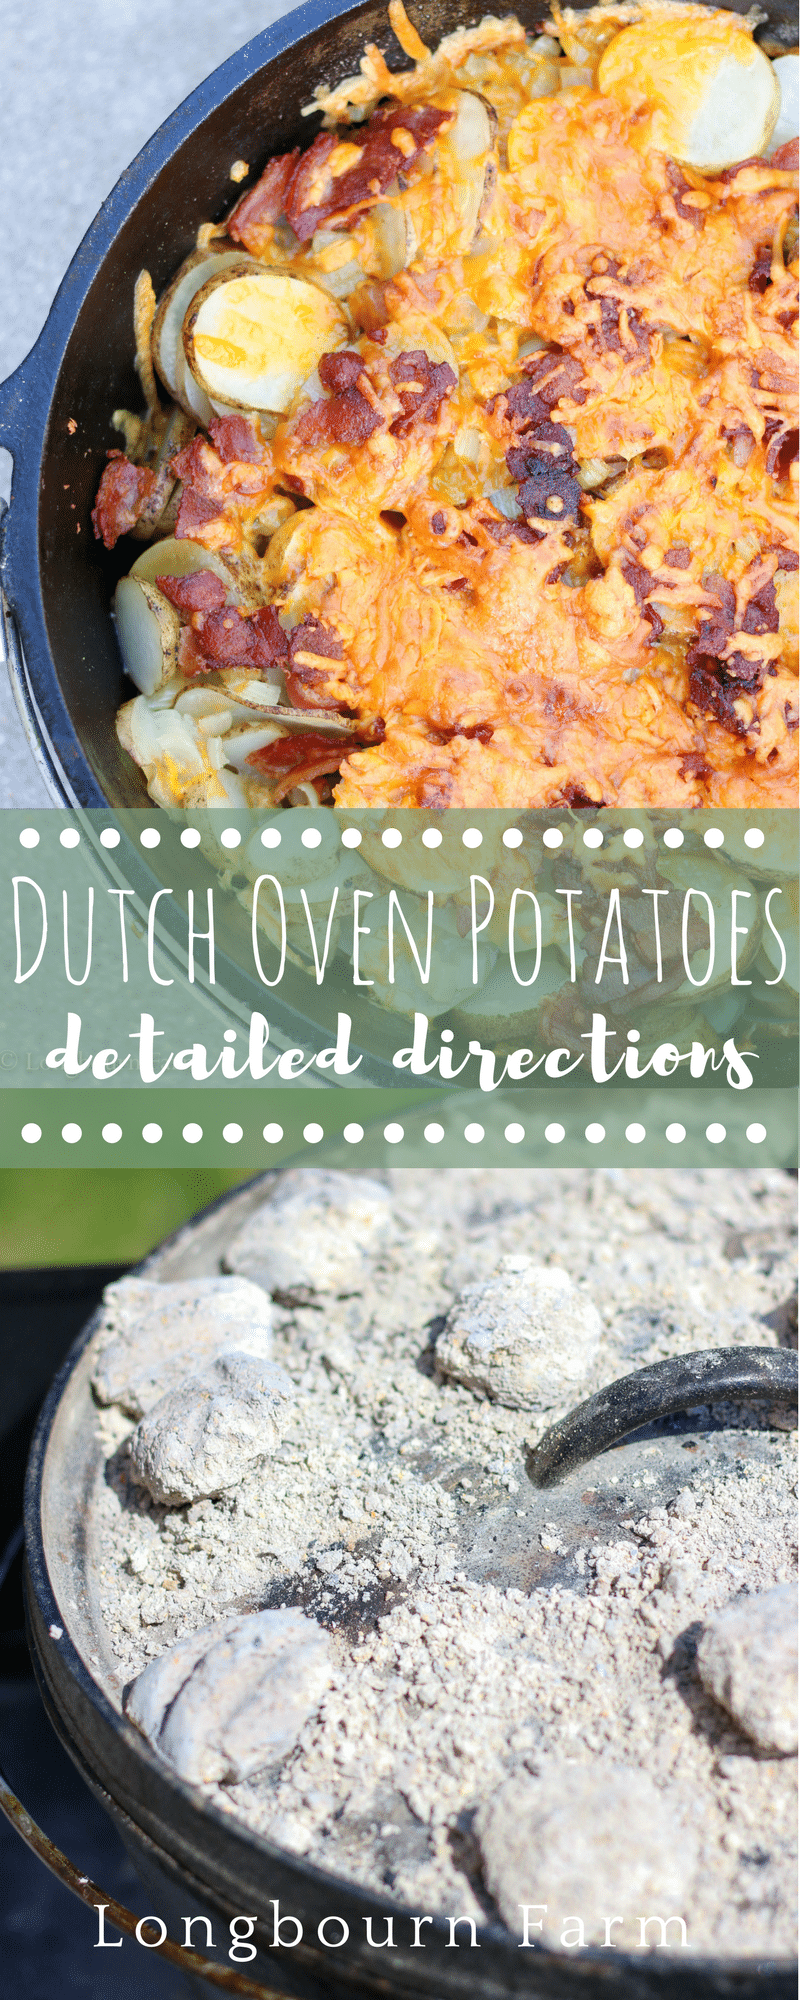 Dutch oven potatoes are a flavor-packed camping classic! A simple & delicious recipe with detailed instructions, even directions for cooking indoors.